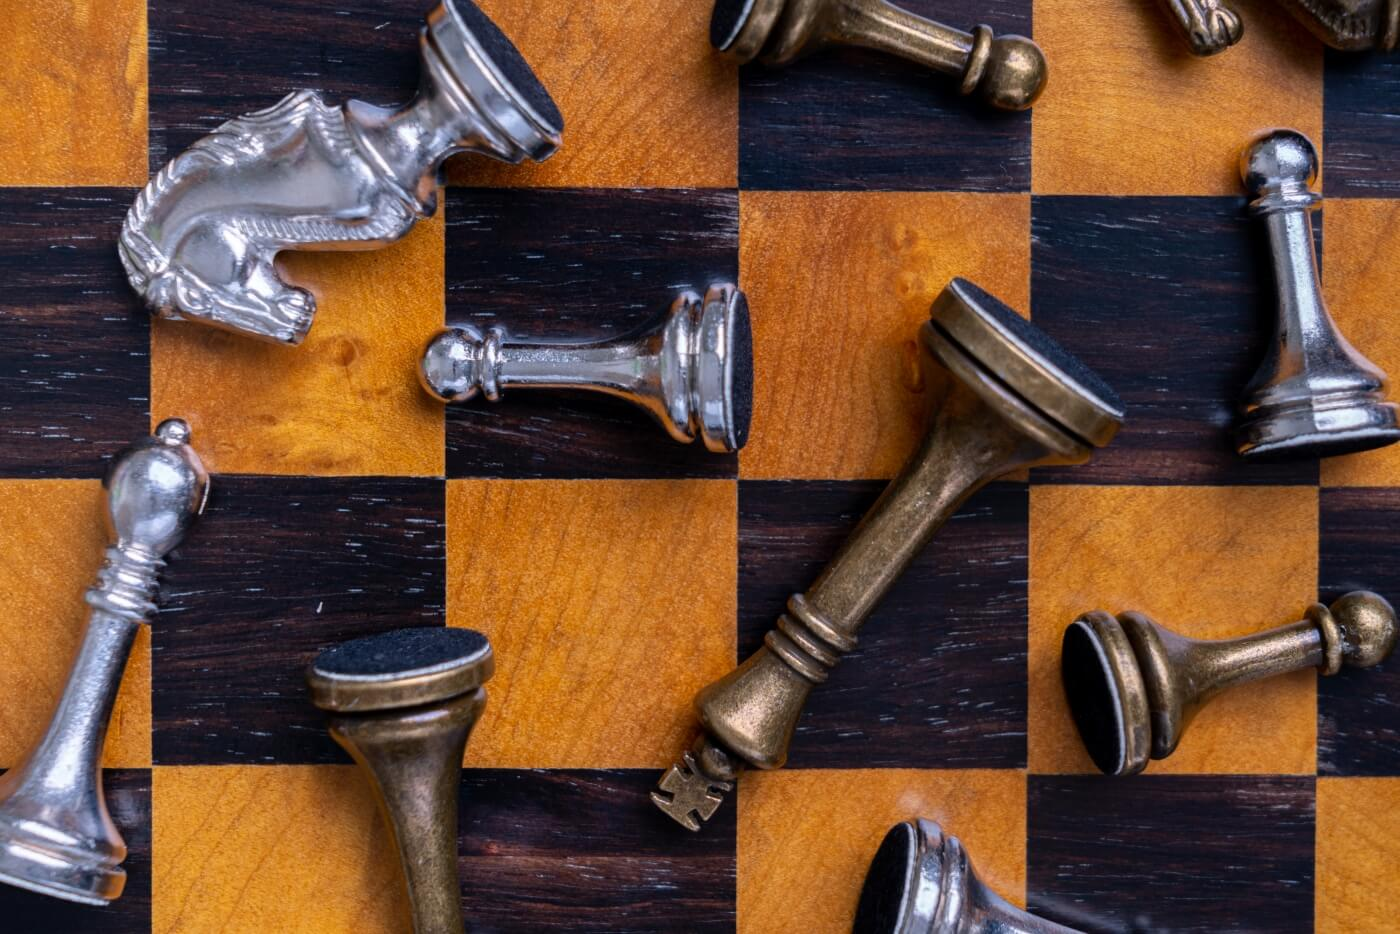 Chess is experiencing a renaissance thanks to the Internet